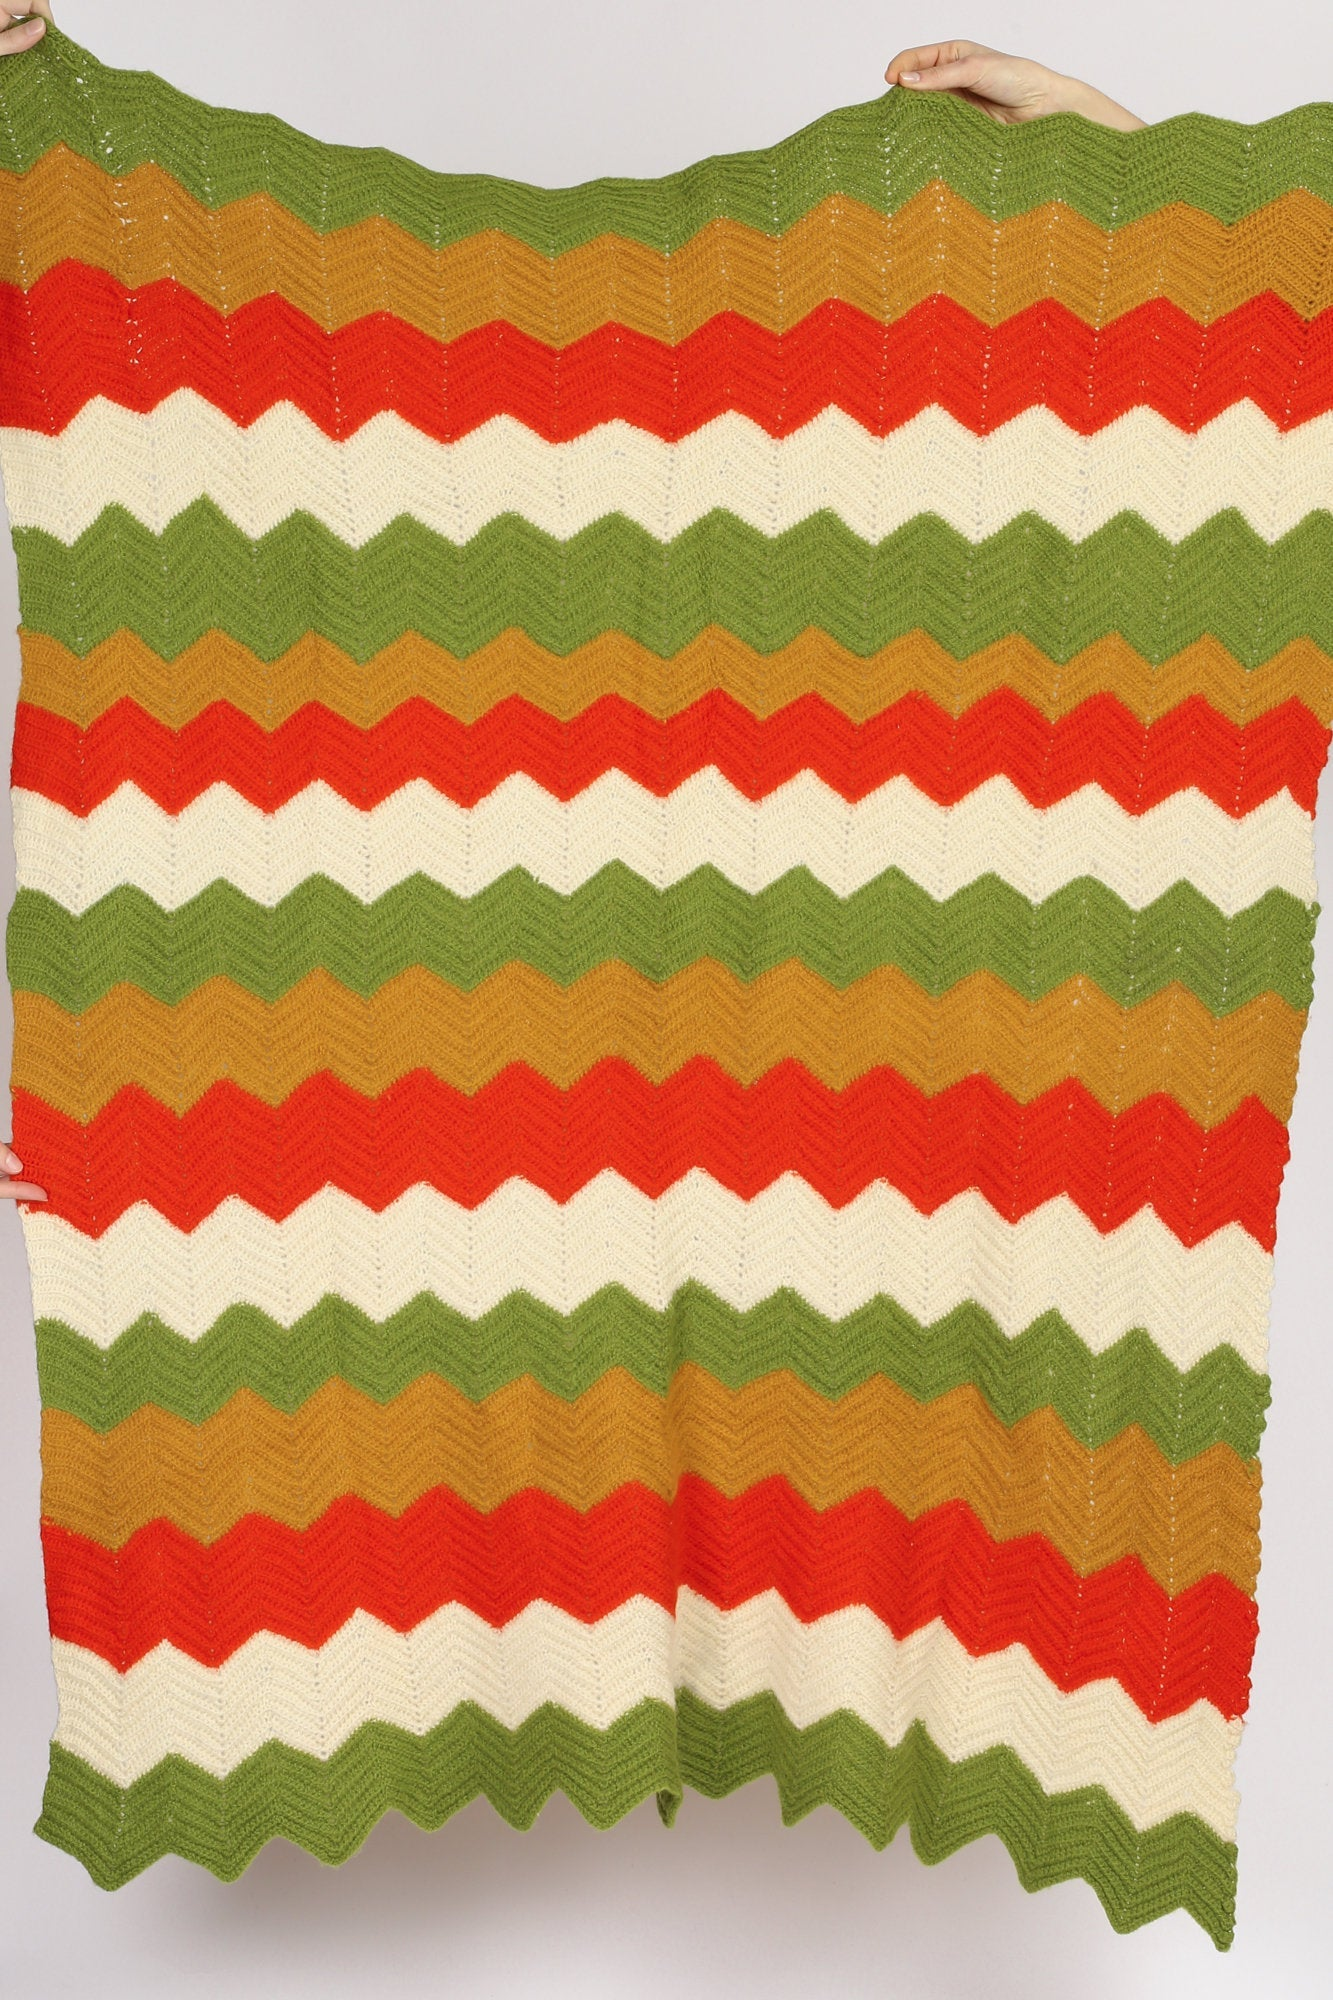 70s Chevron Stripe Crochet Knit Blanket - 3.5'x4.5'